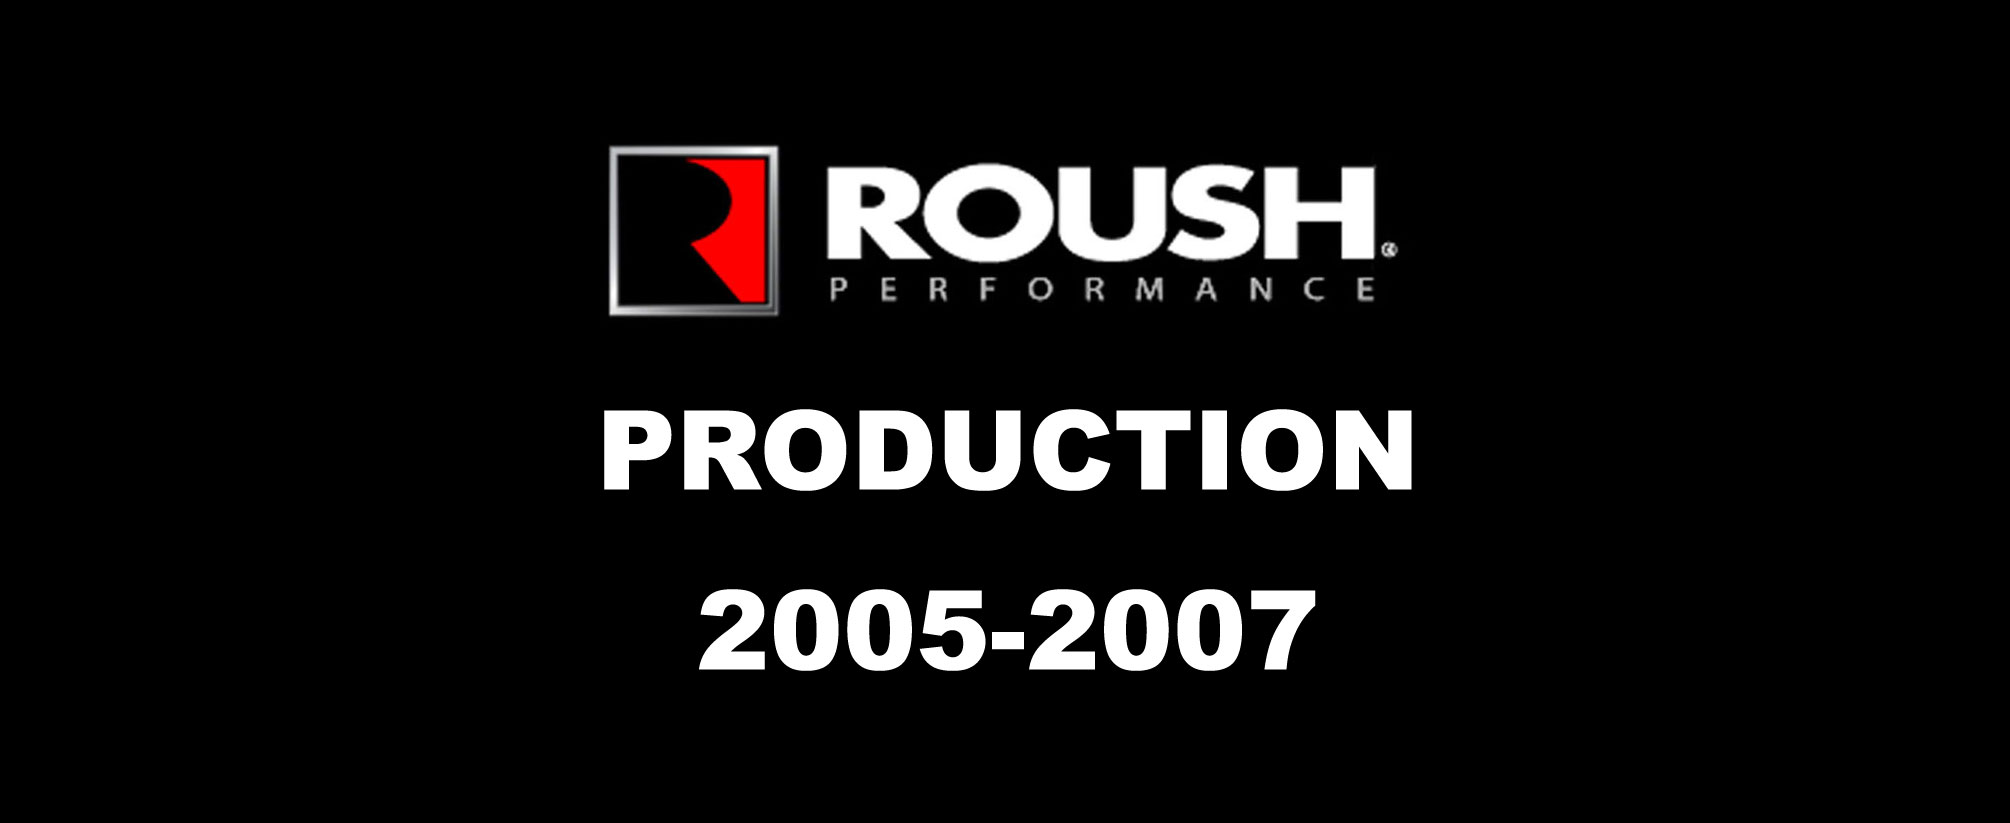 Roush-2005-2007-production-A